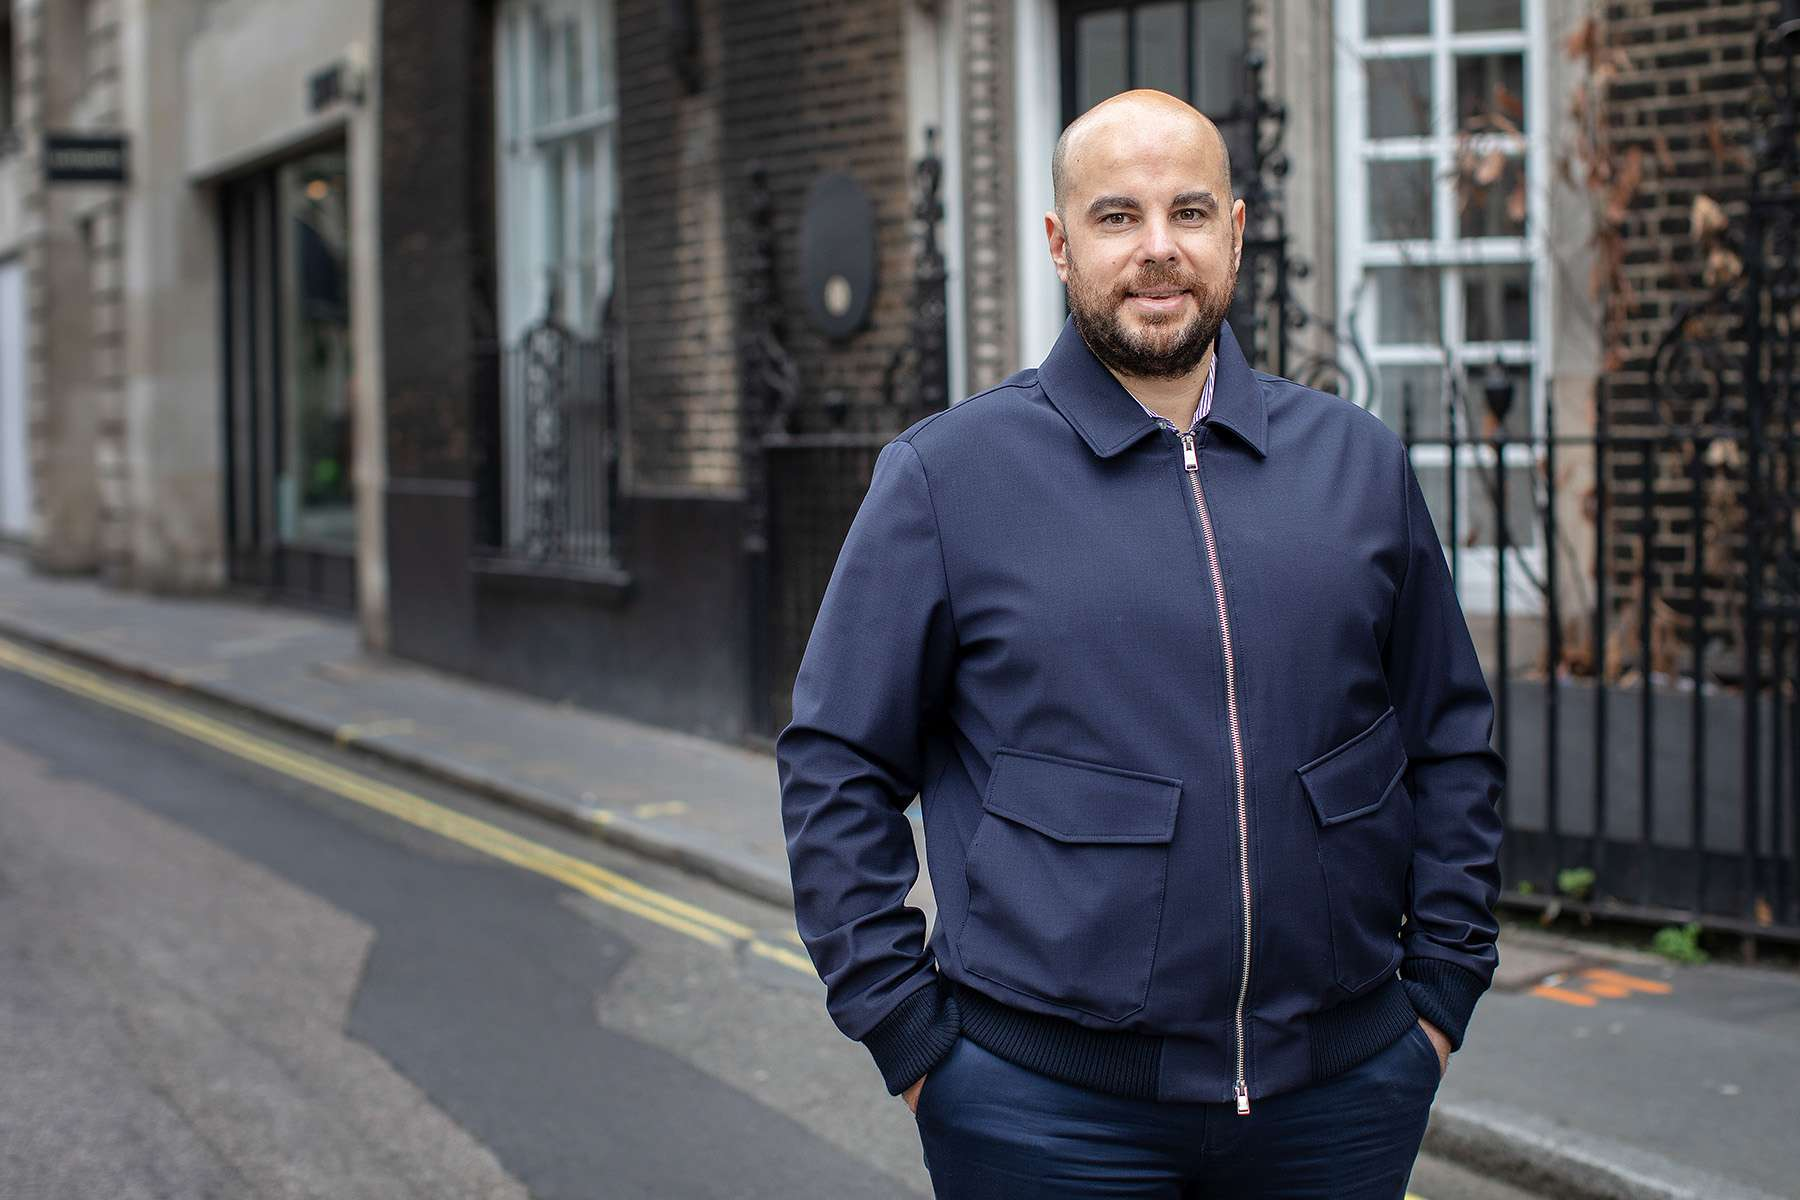 Carlos Gonzalez-Cadenas outside of Index's offices in London